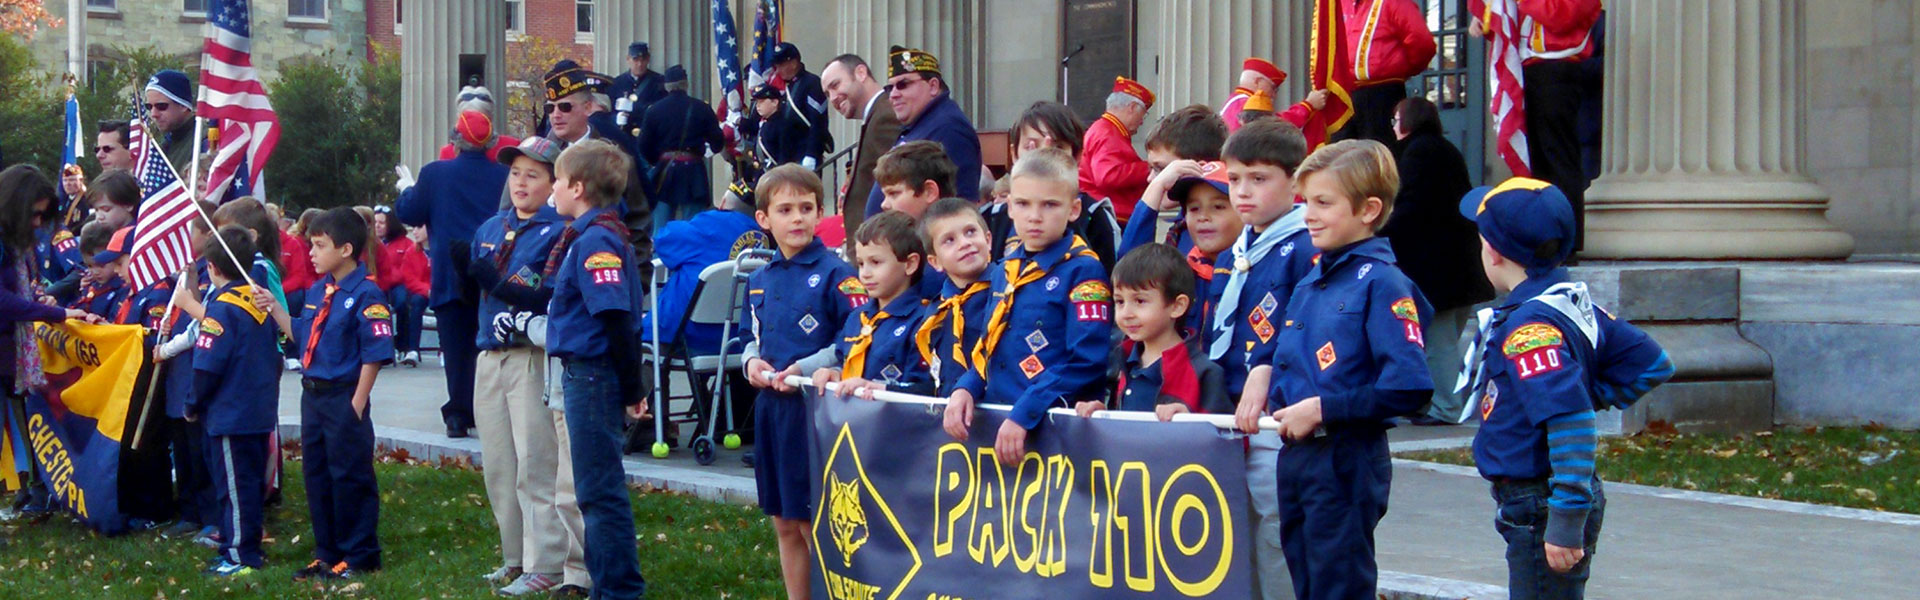 Cub Scouts West Chester Veterans Day Parade